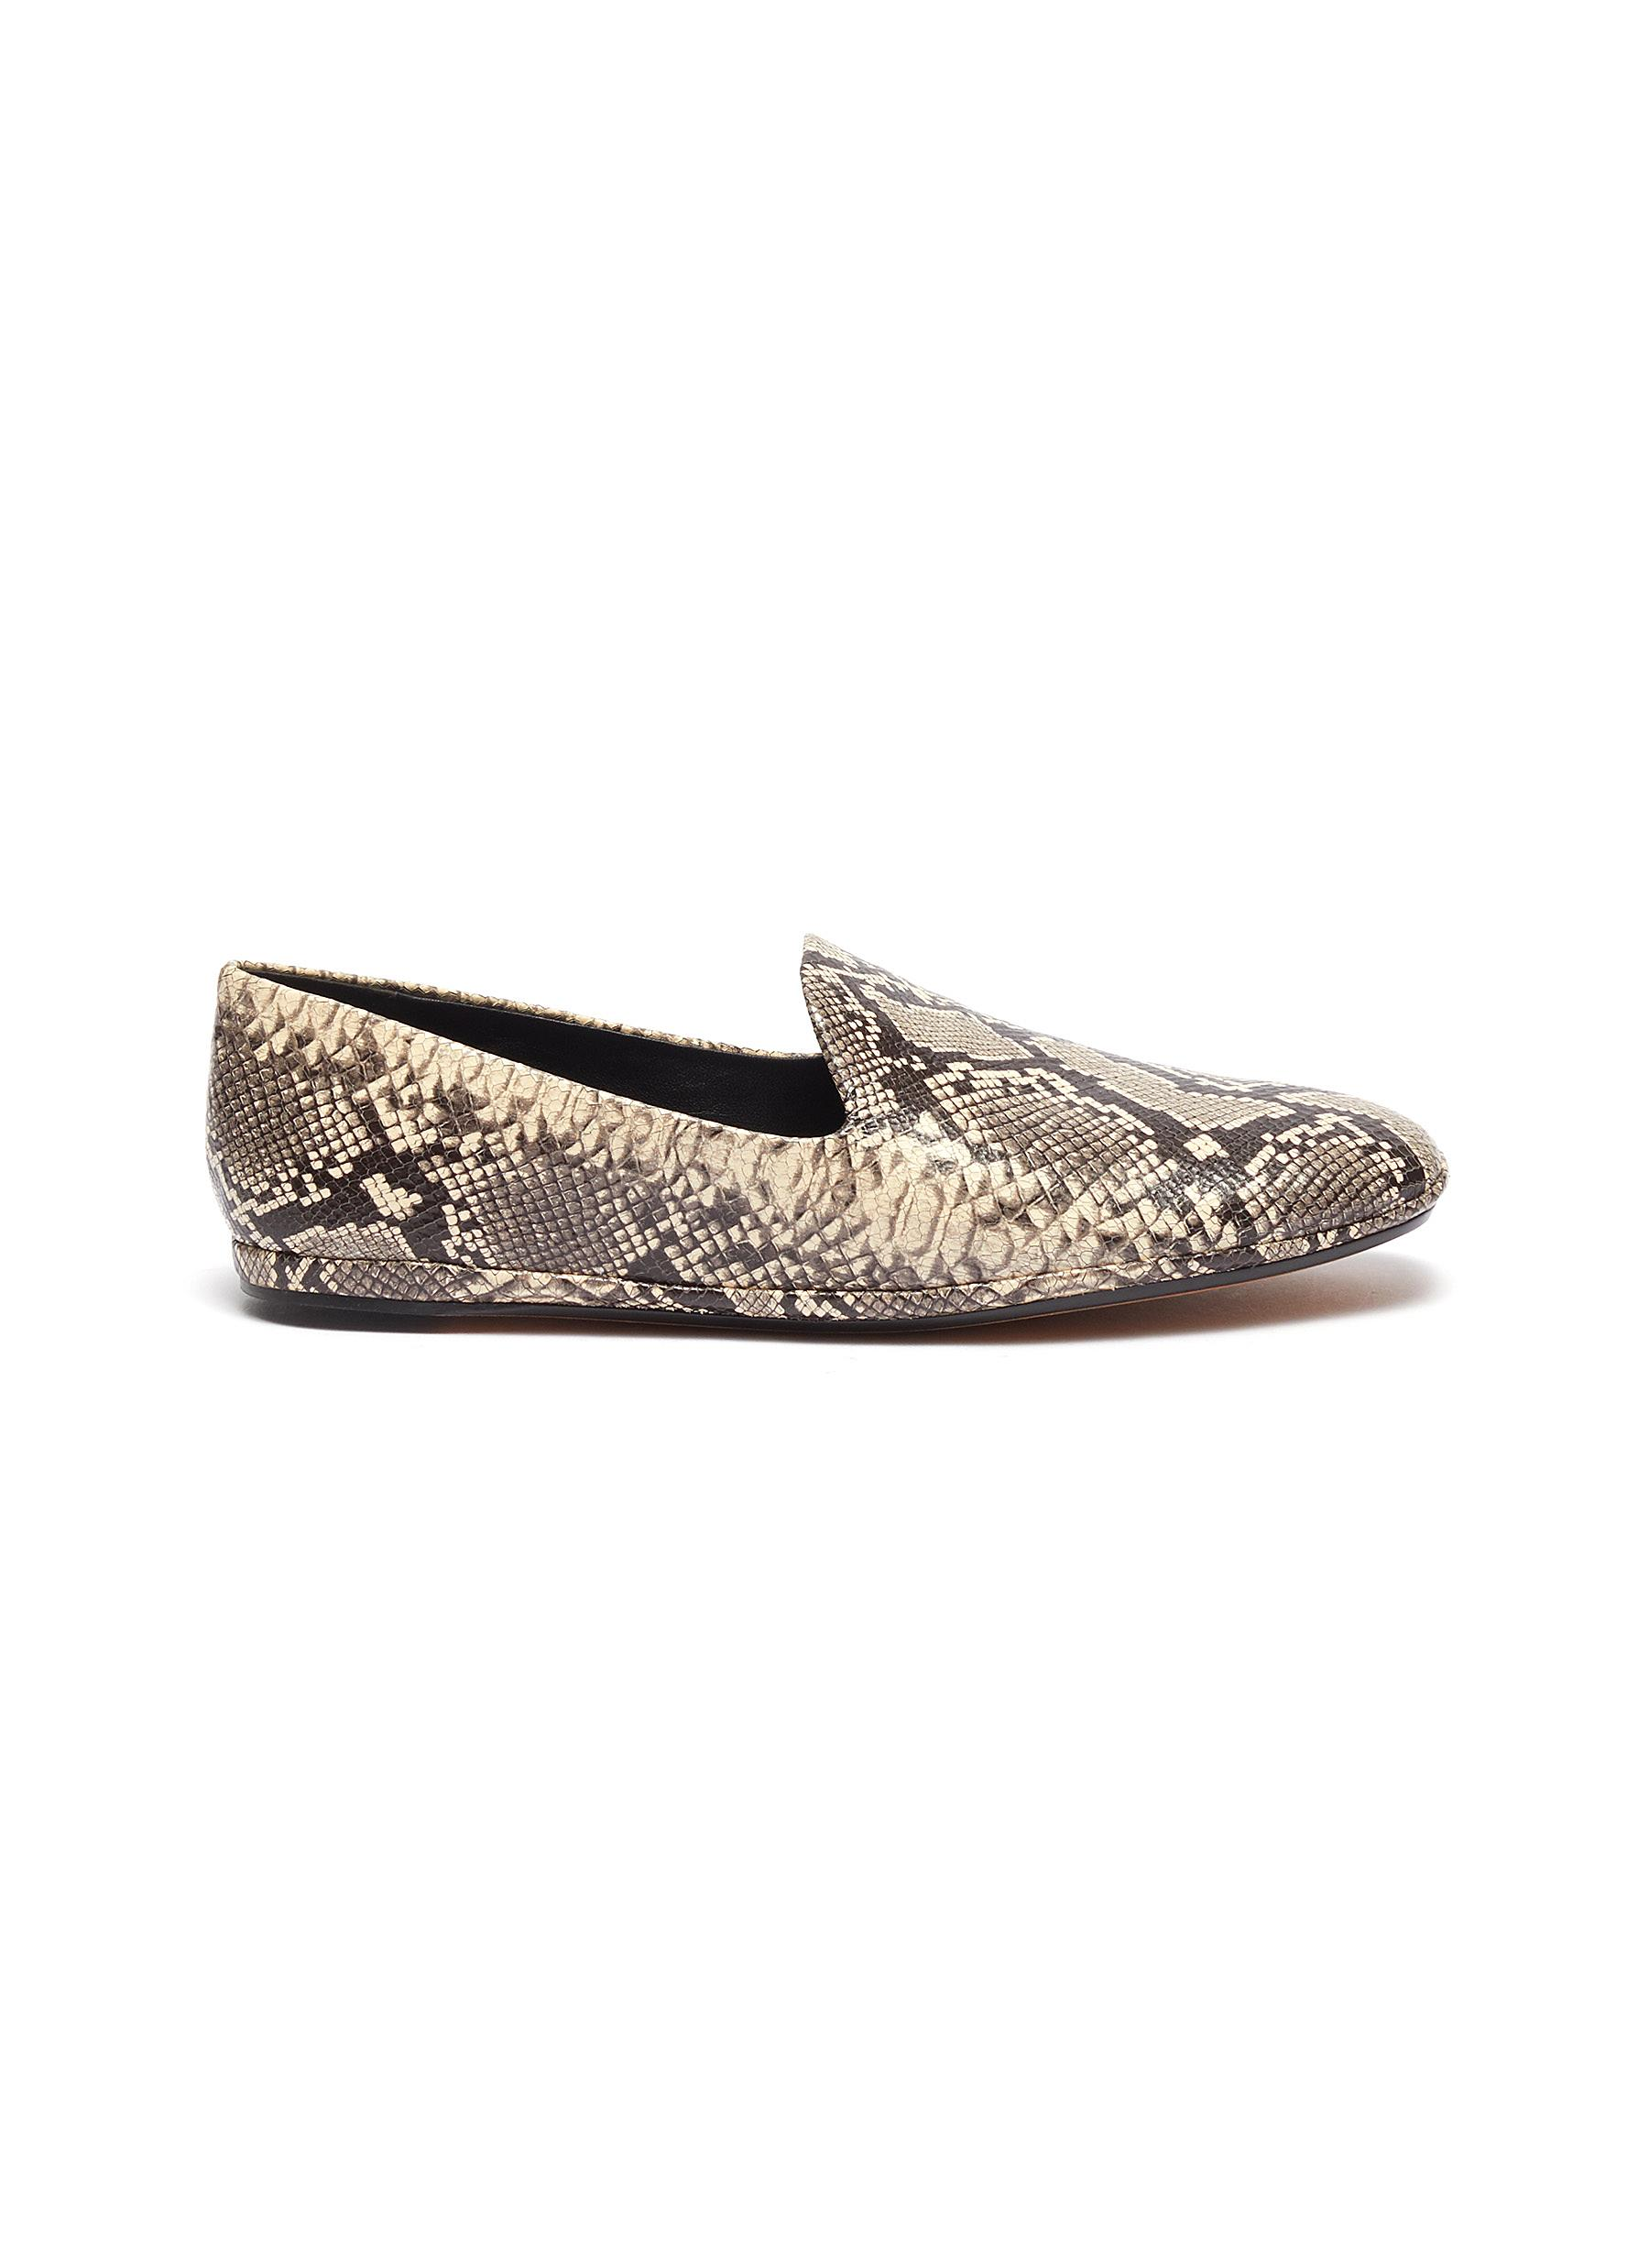 Paz snake embossed leather loafers by Vince